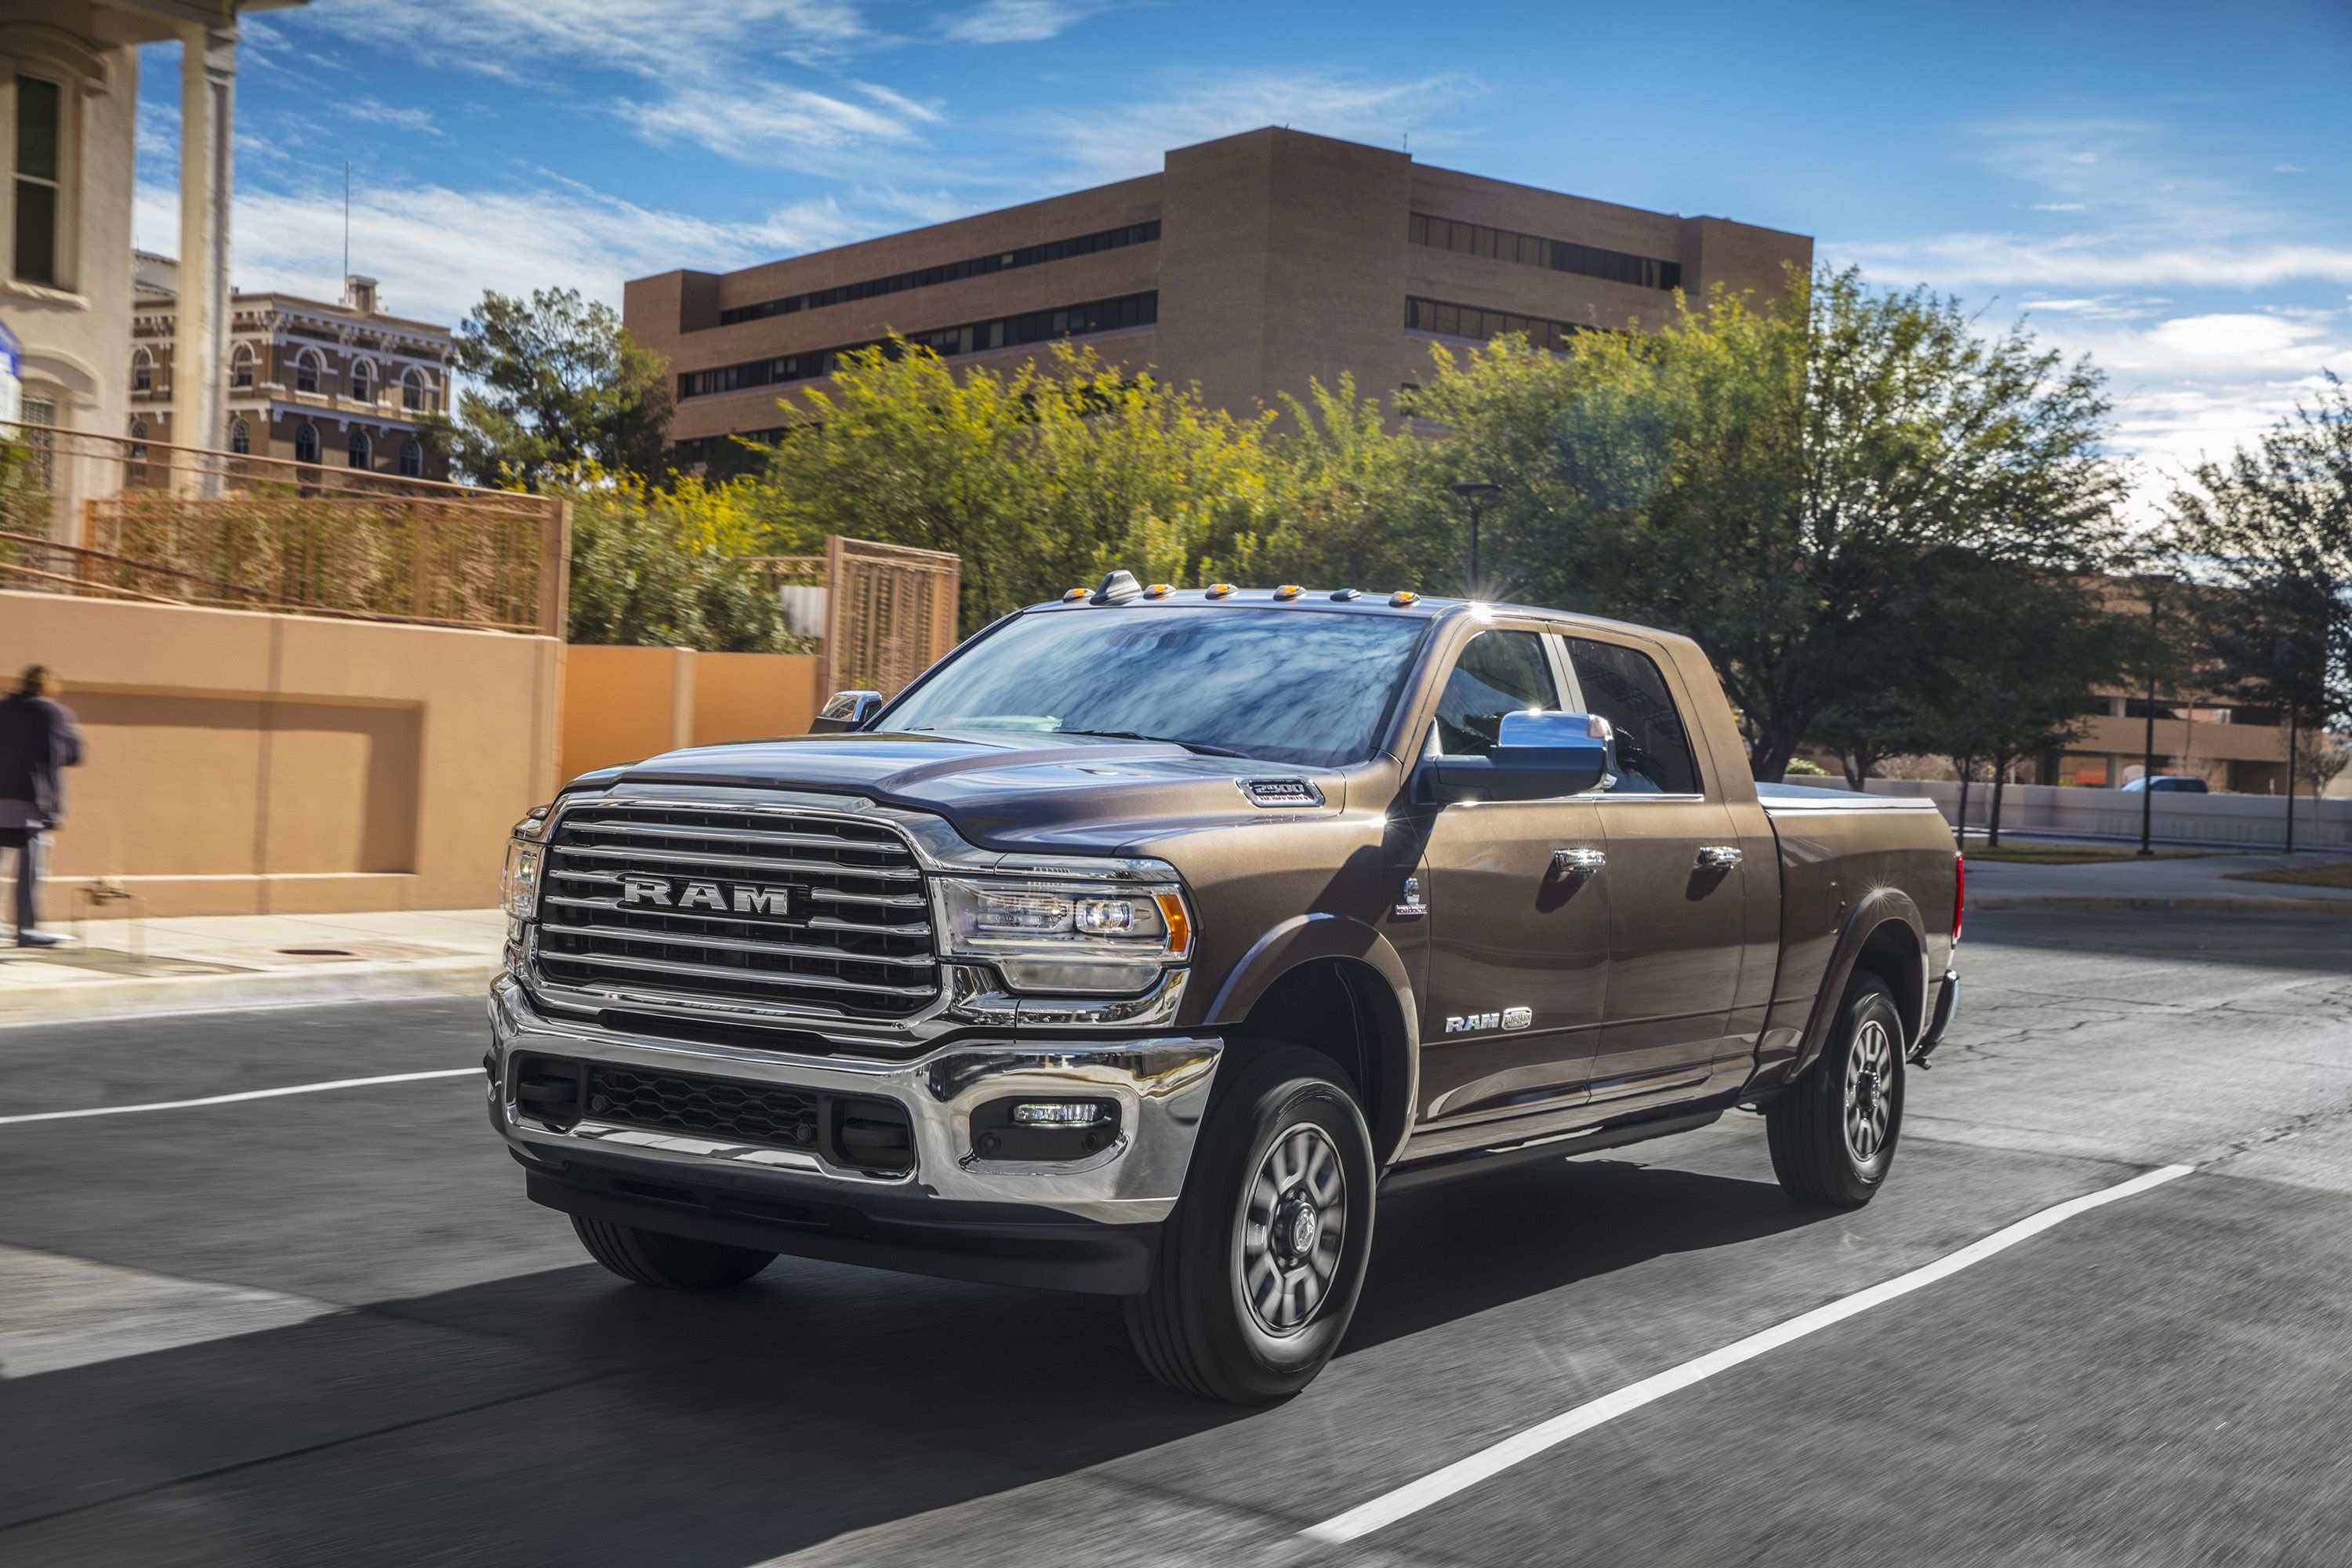 86 The Best 2019 Ram 2500 Diesel Wallpaper